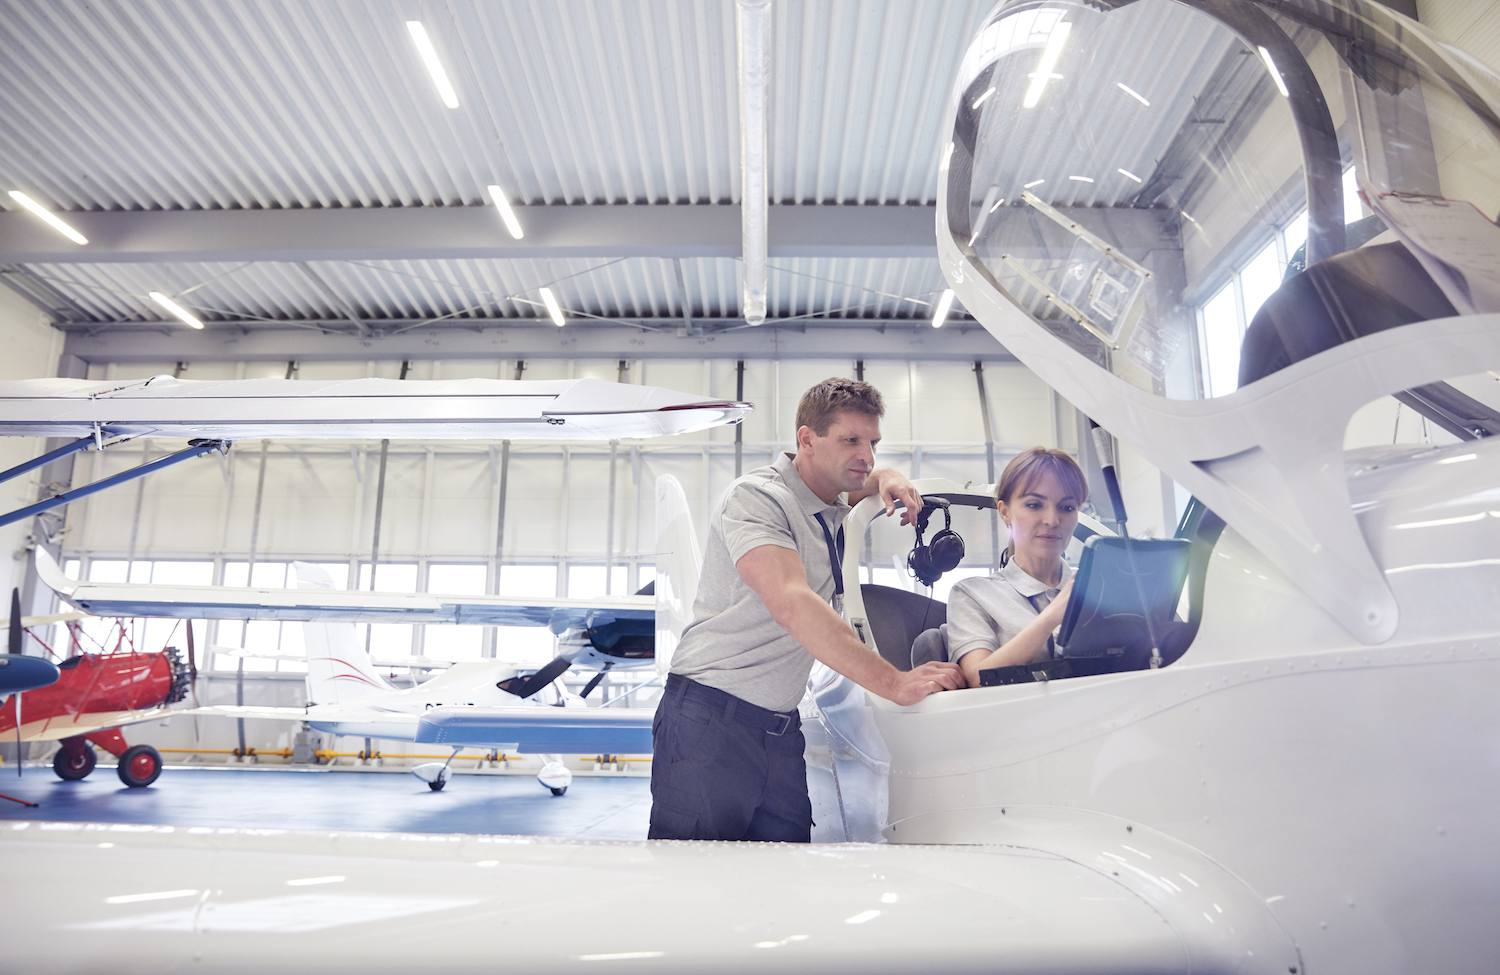 Man and woman working in airplane cockpit in hangar